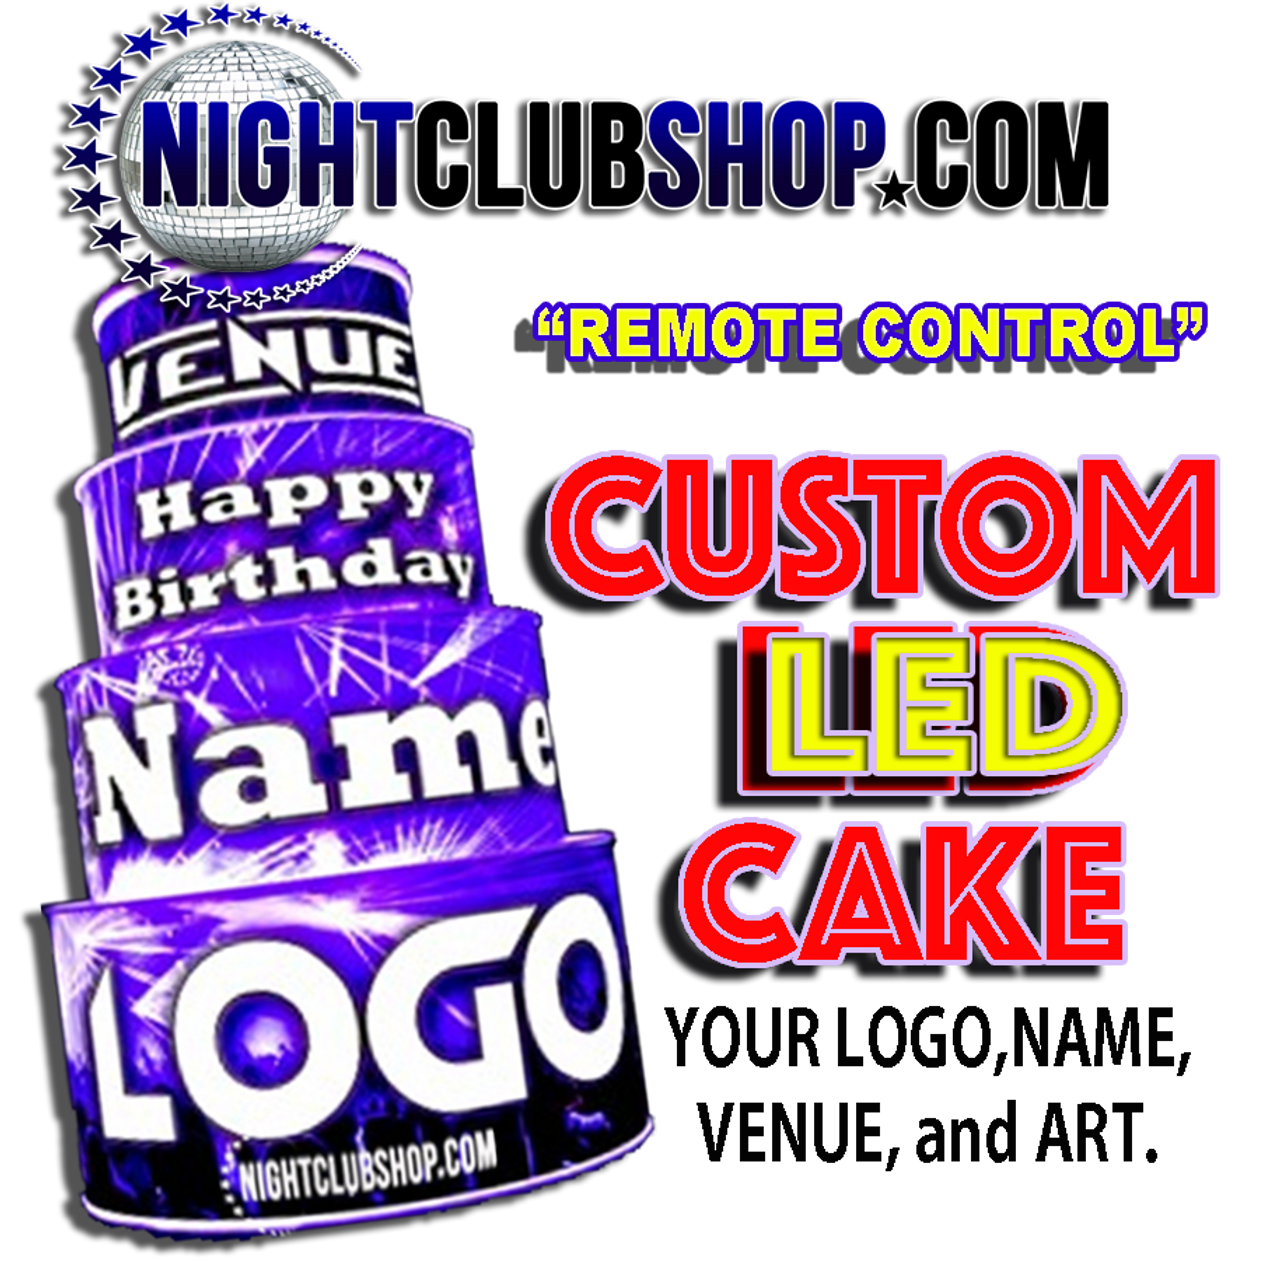 LED, Birthday, Cake, LEDCake, LED Cake, Light up, illuminated,custom